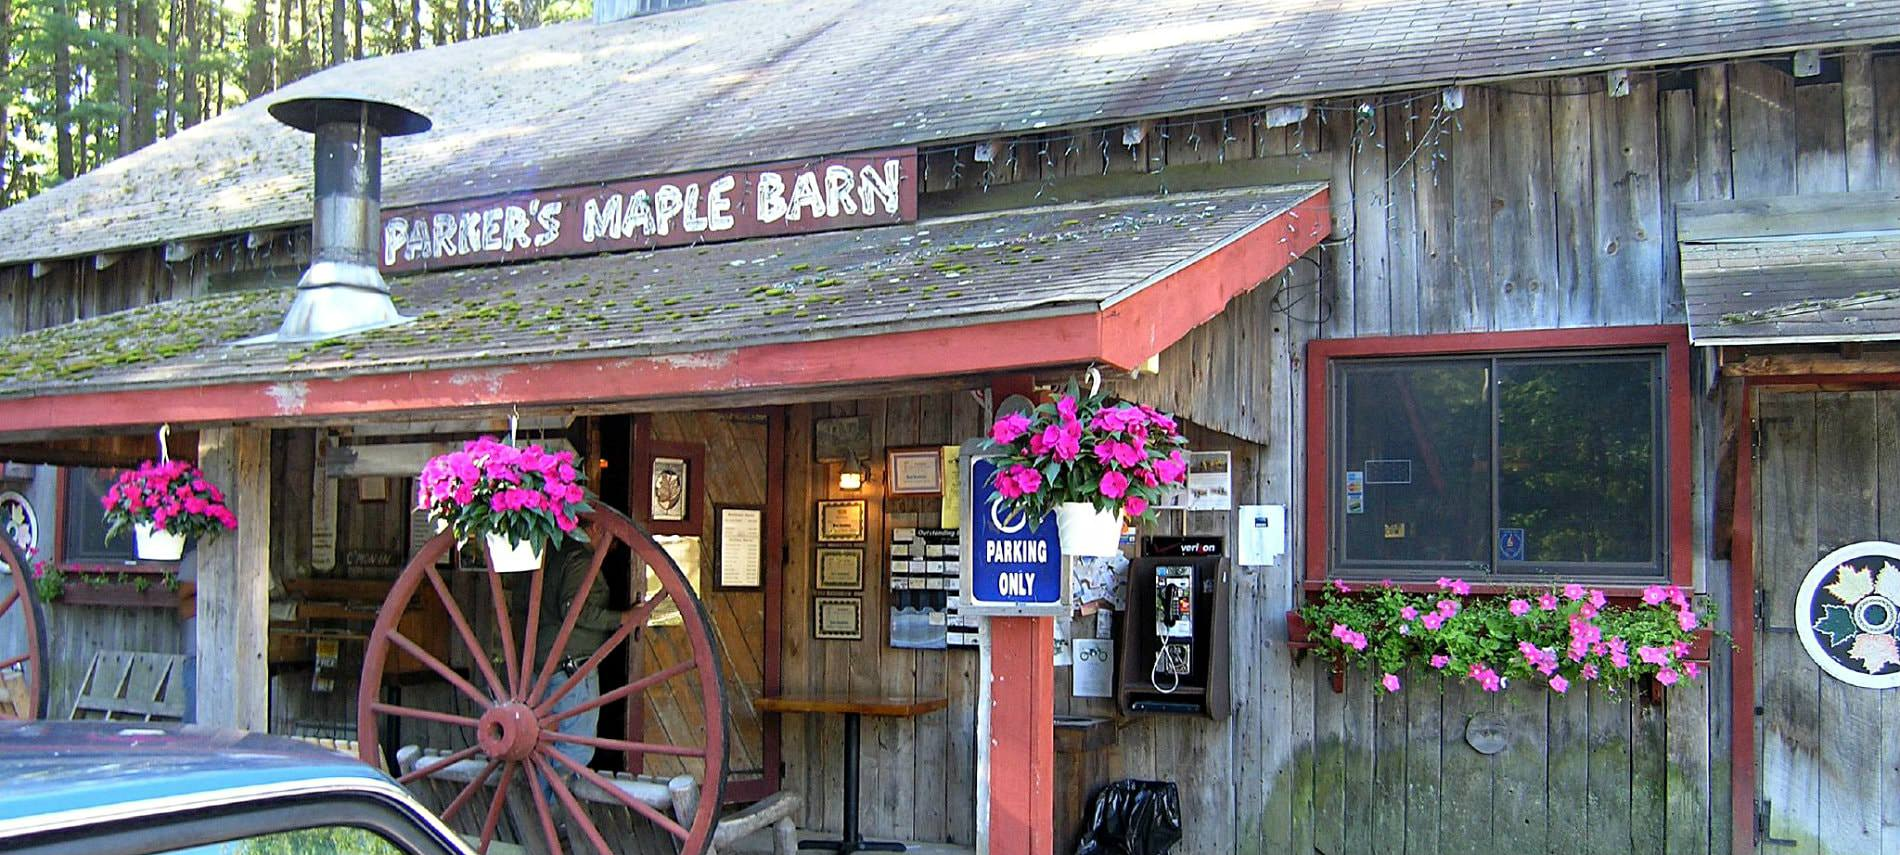 Parker's Maple Barn store front with covered entrance, fresh pink flowers, and wagon wheel